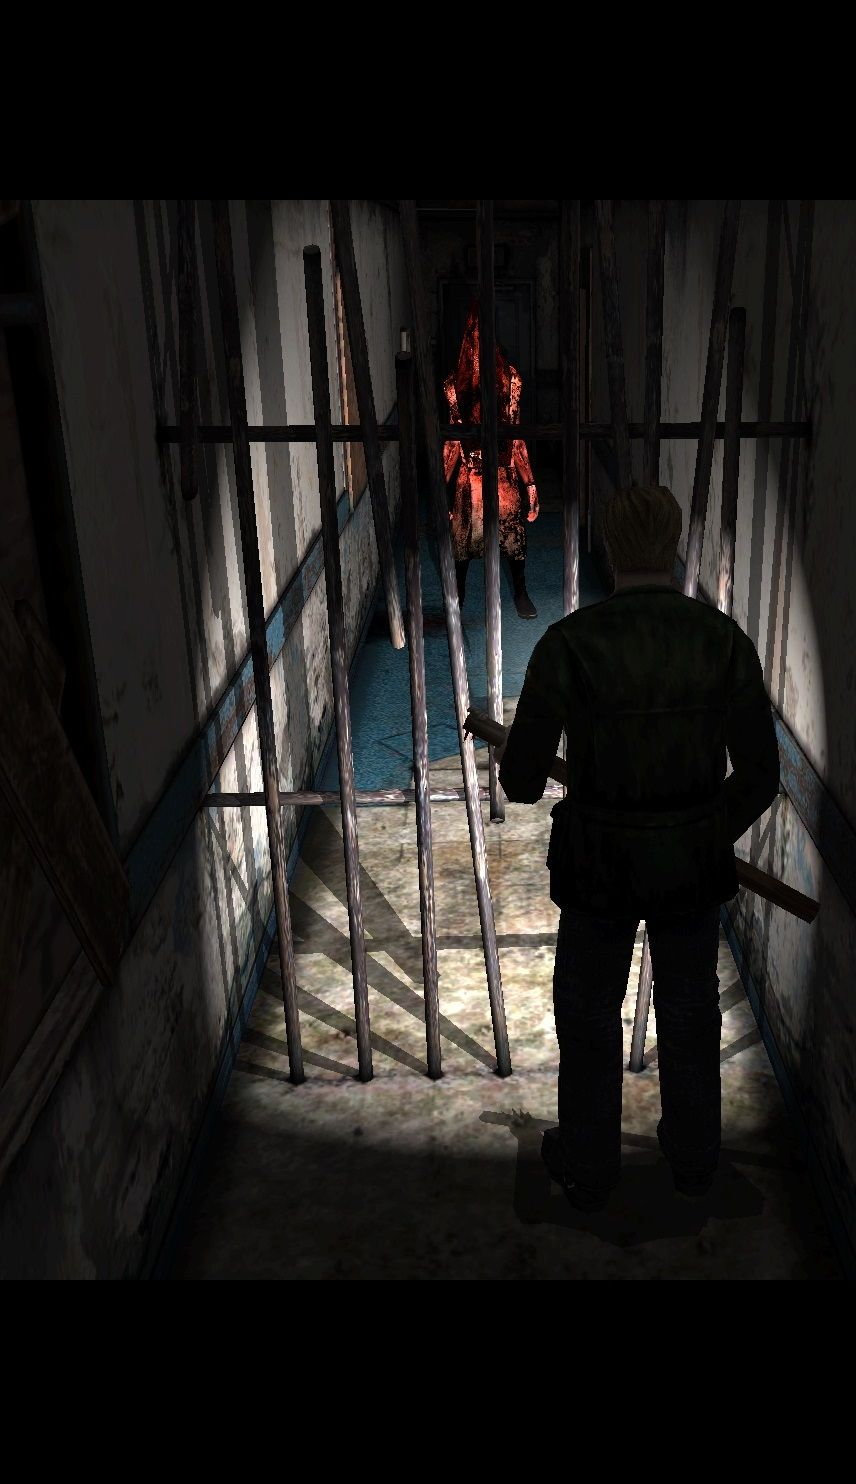 Silent Hill 2 - Red Pyramid Head - The iron bar symbolize ...